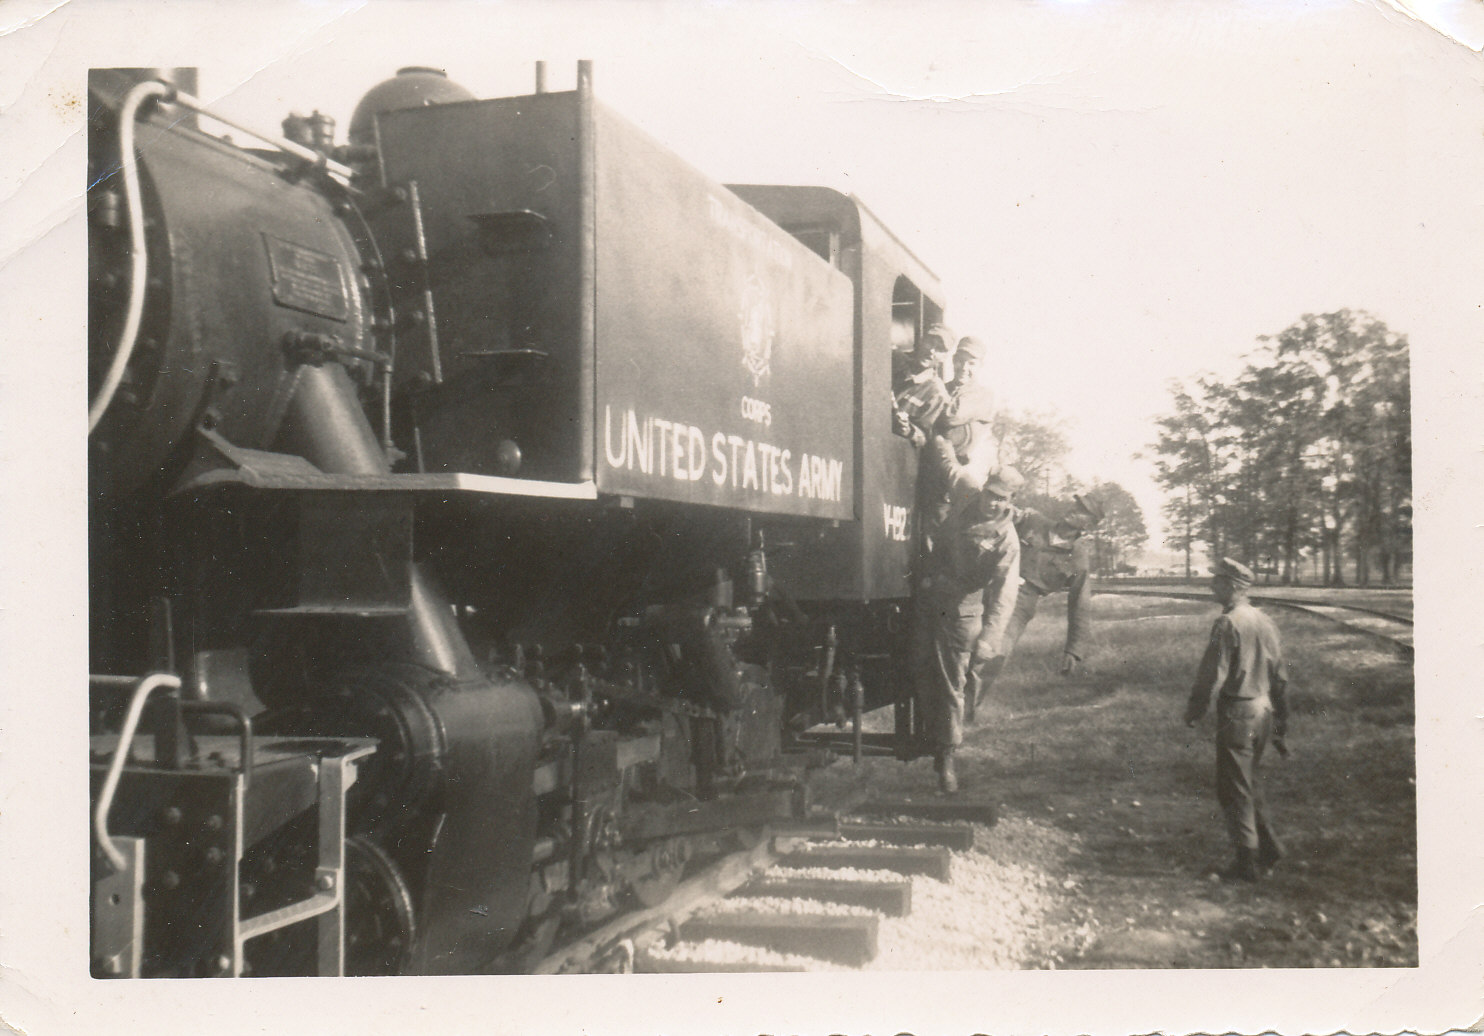 Black and white photo of man hanging from railroad car